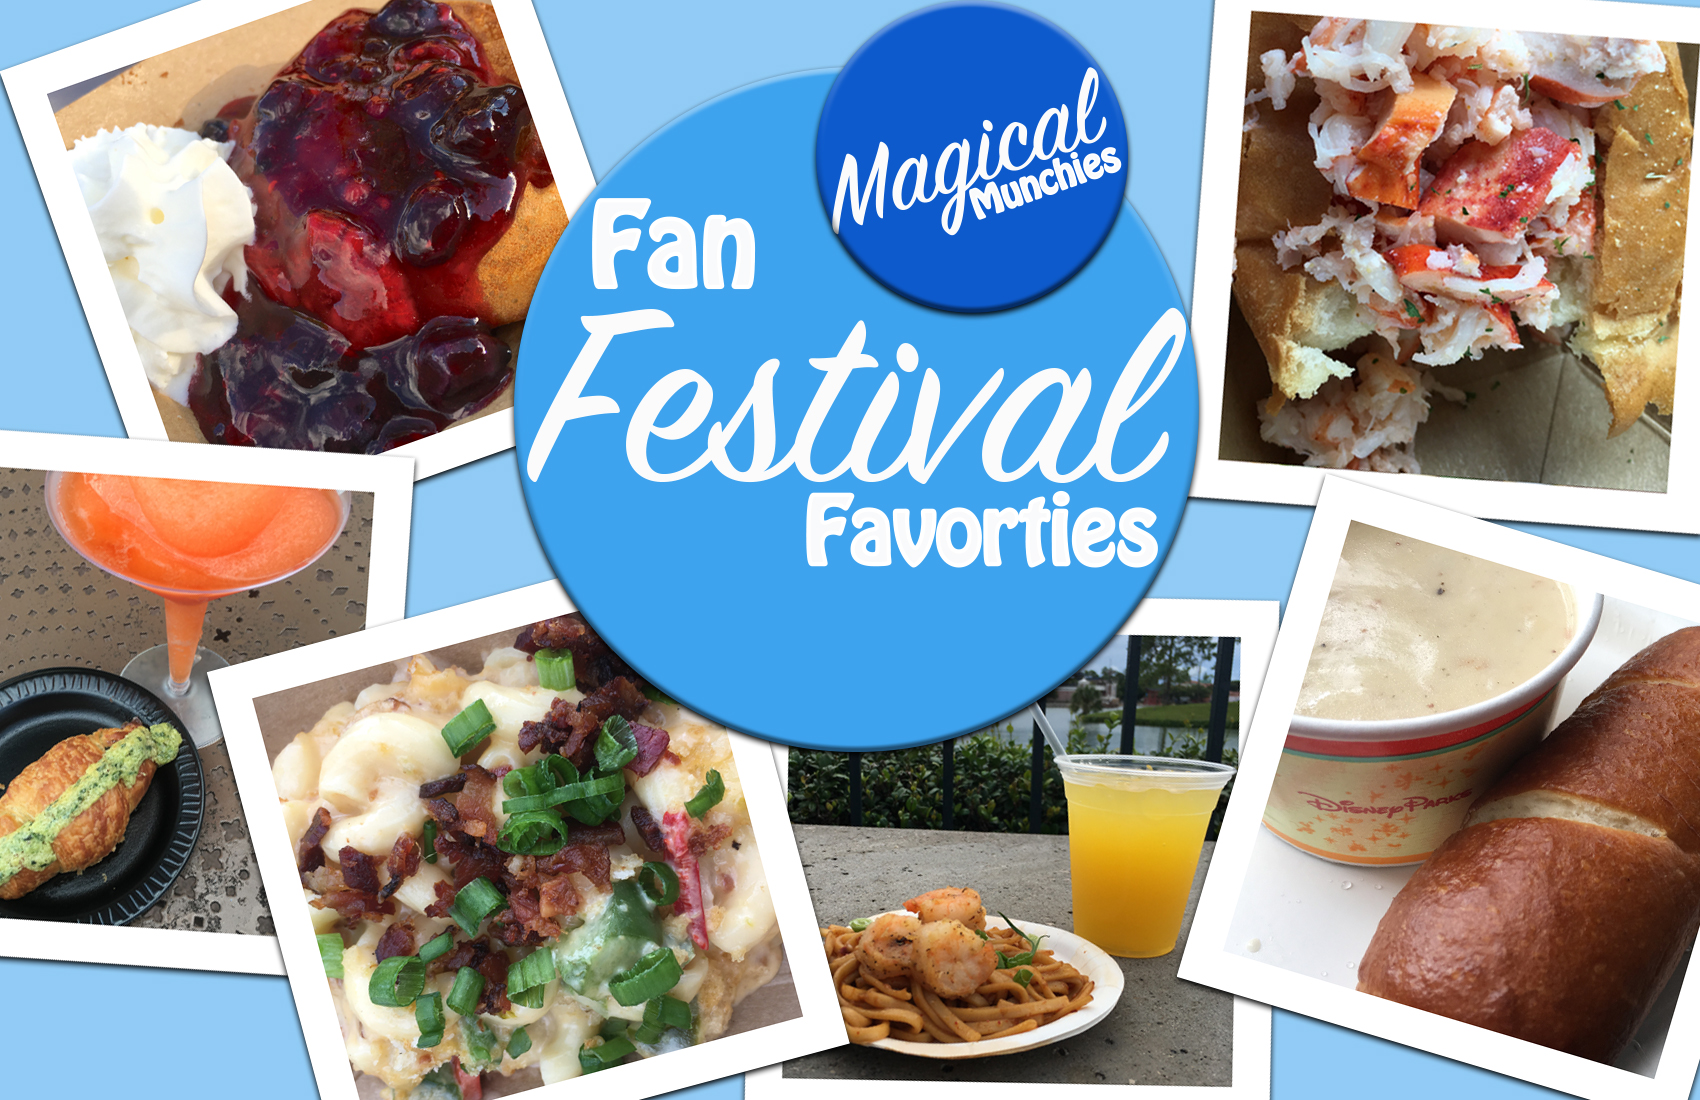 DizRadio Fan Festival Favorites Magical Munchies CONTEST!